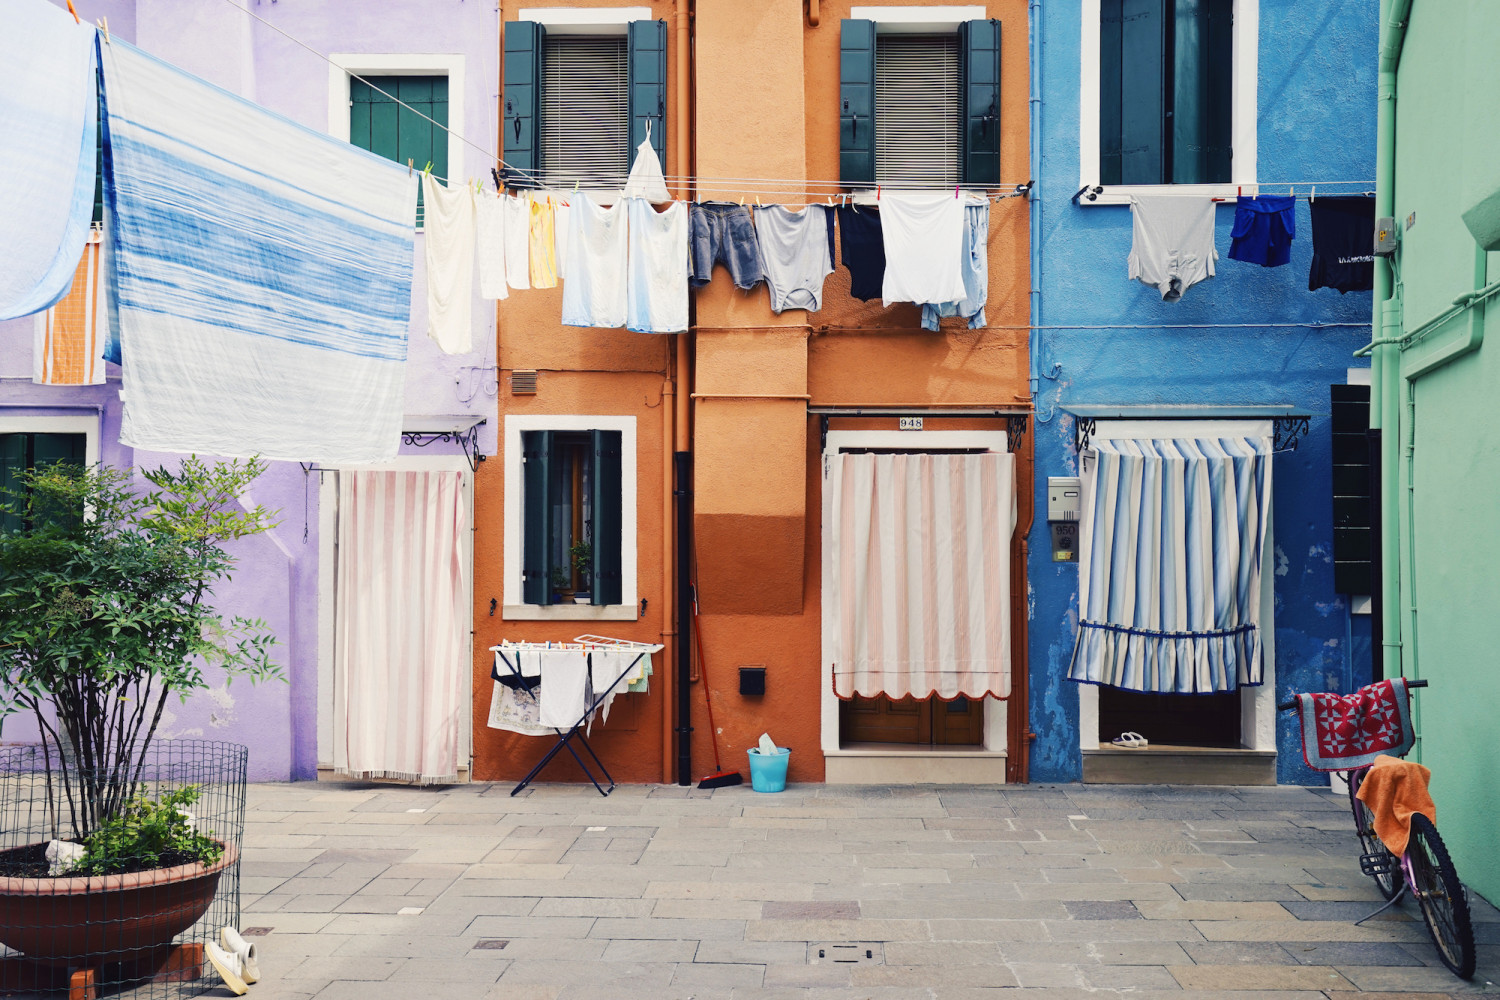 burano-fresh-laundry-dante-vincent-photography